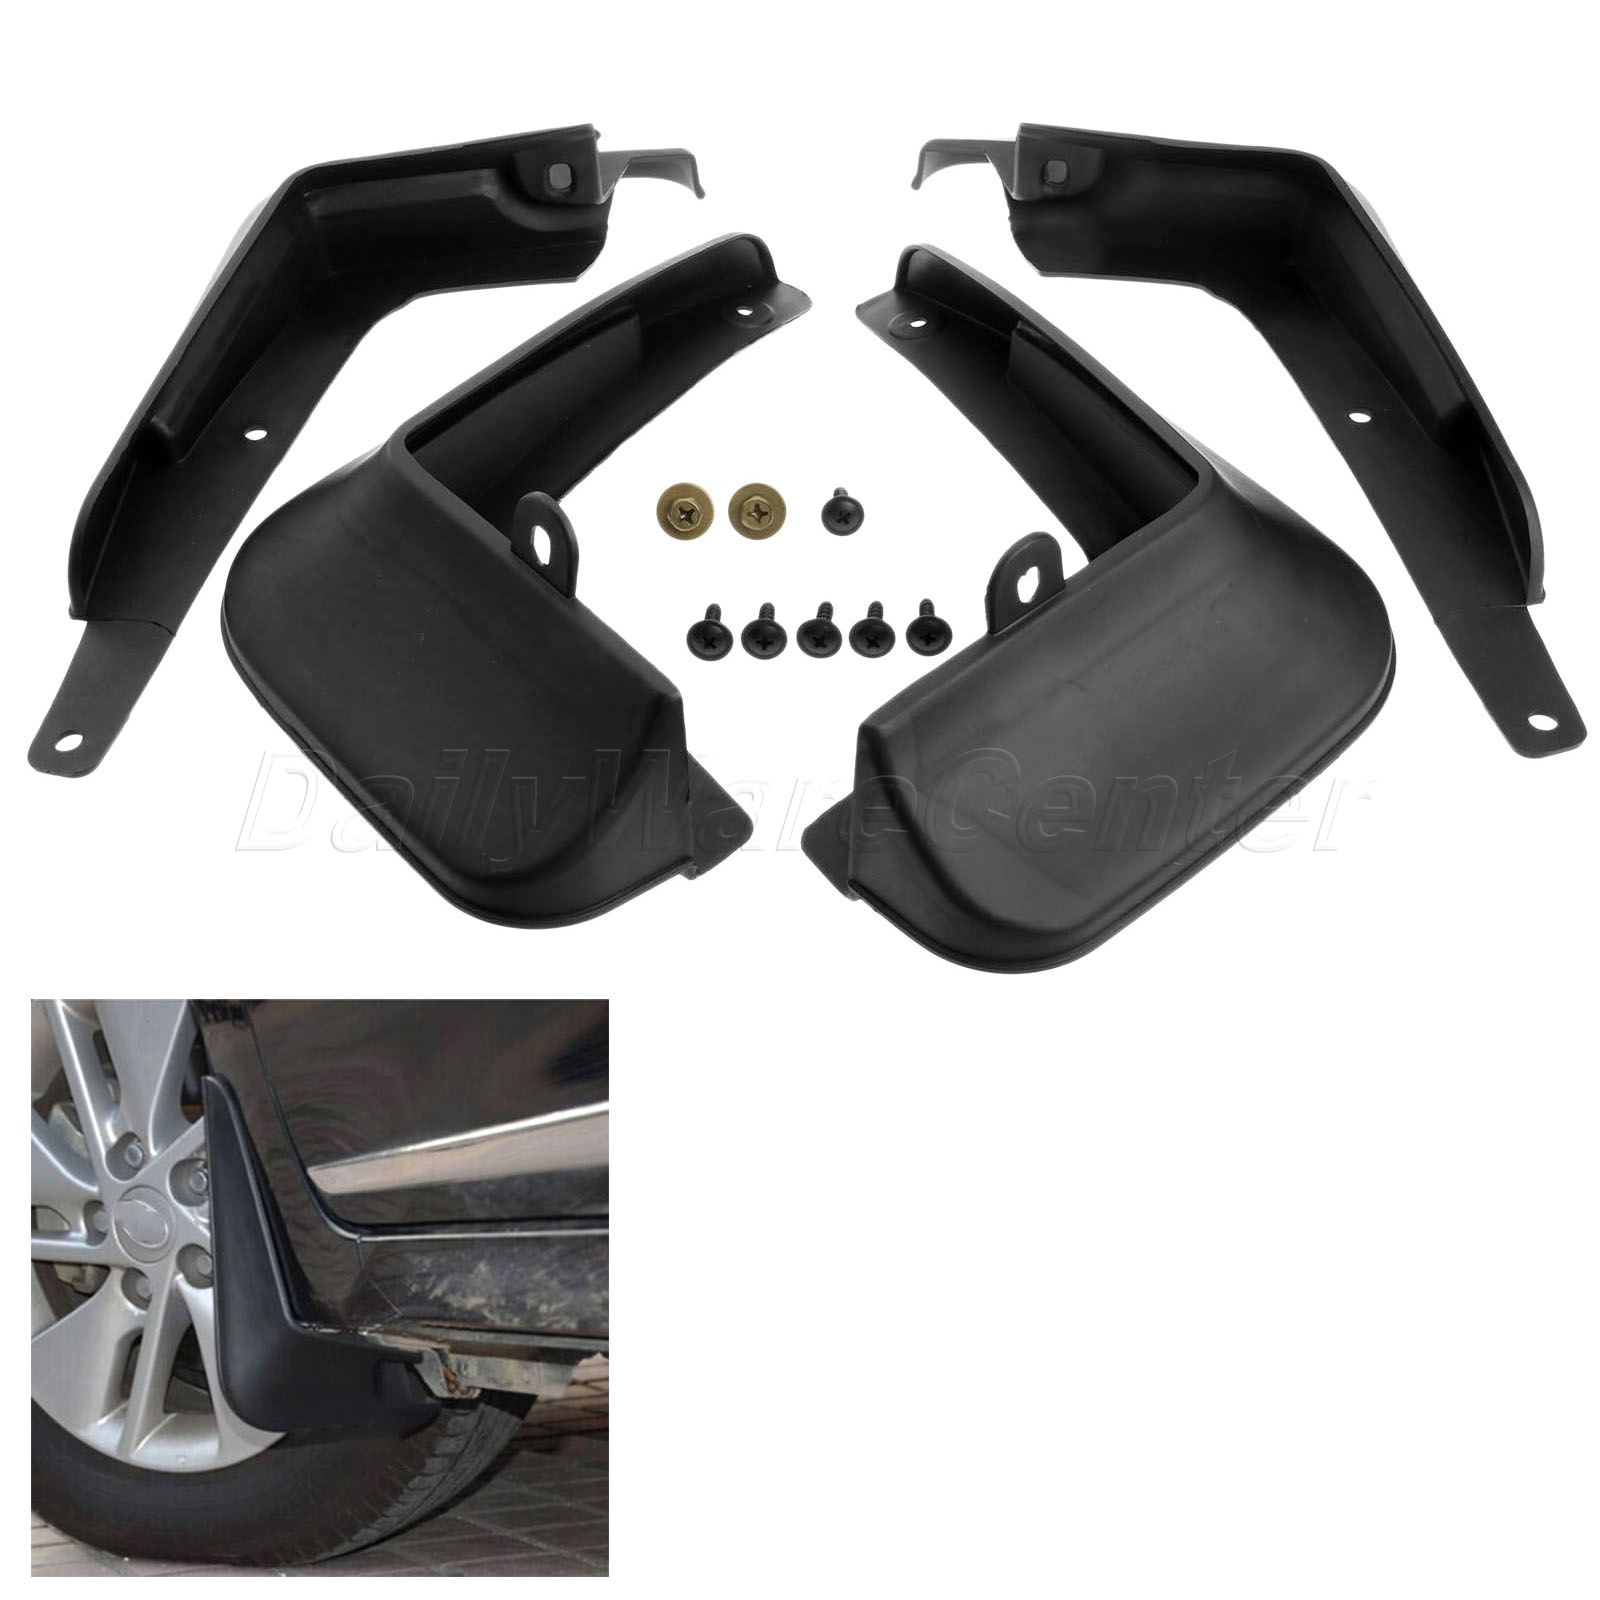 Car styling 4pcs mud flaps on car mud guard fender splash guards for toyota corolla